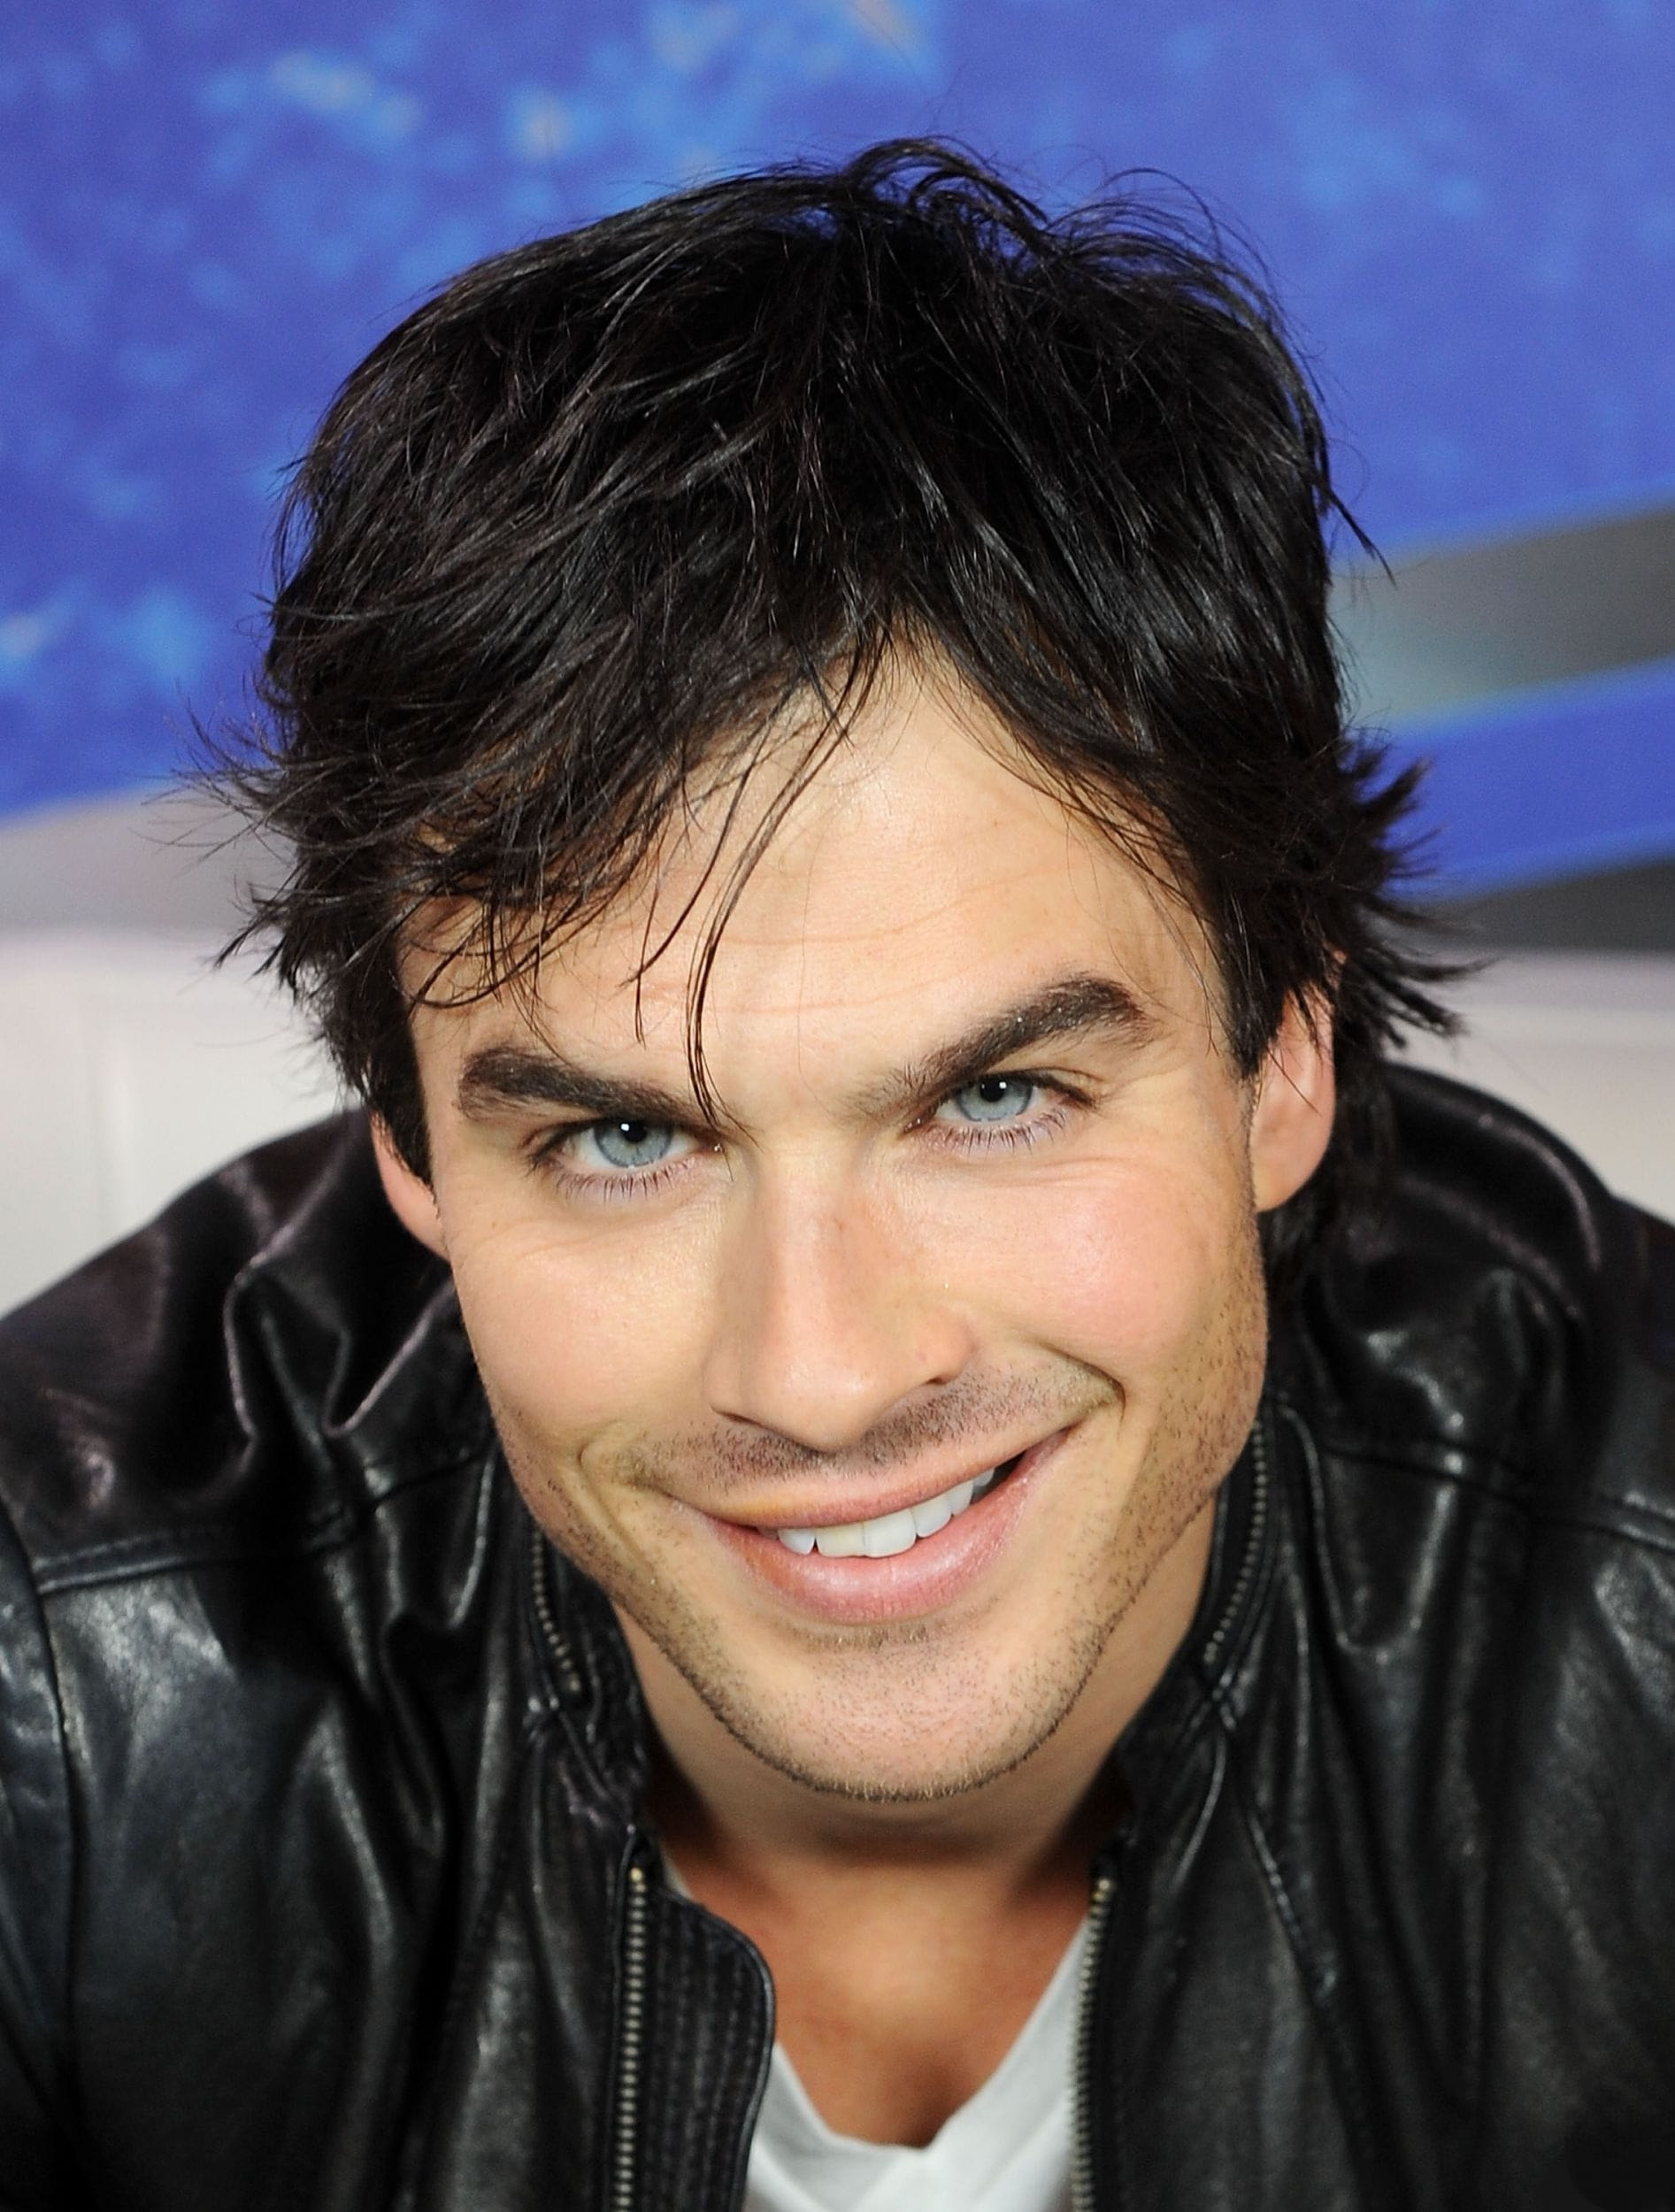 Ian Somerhalder For mobile